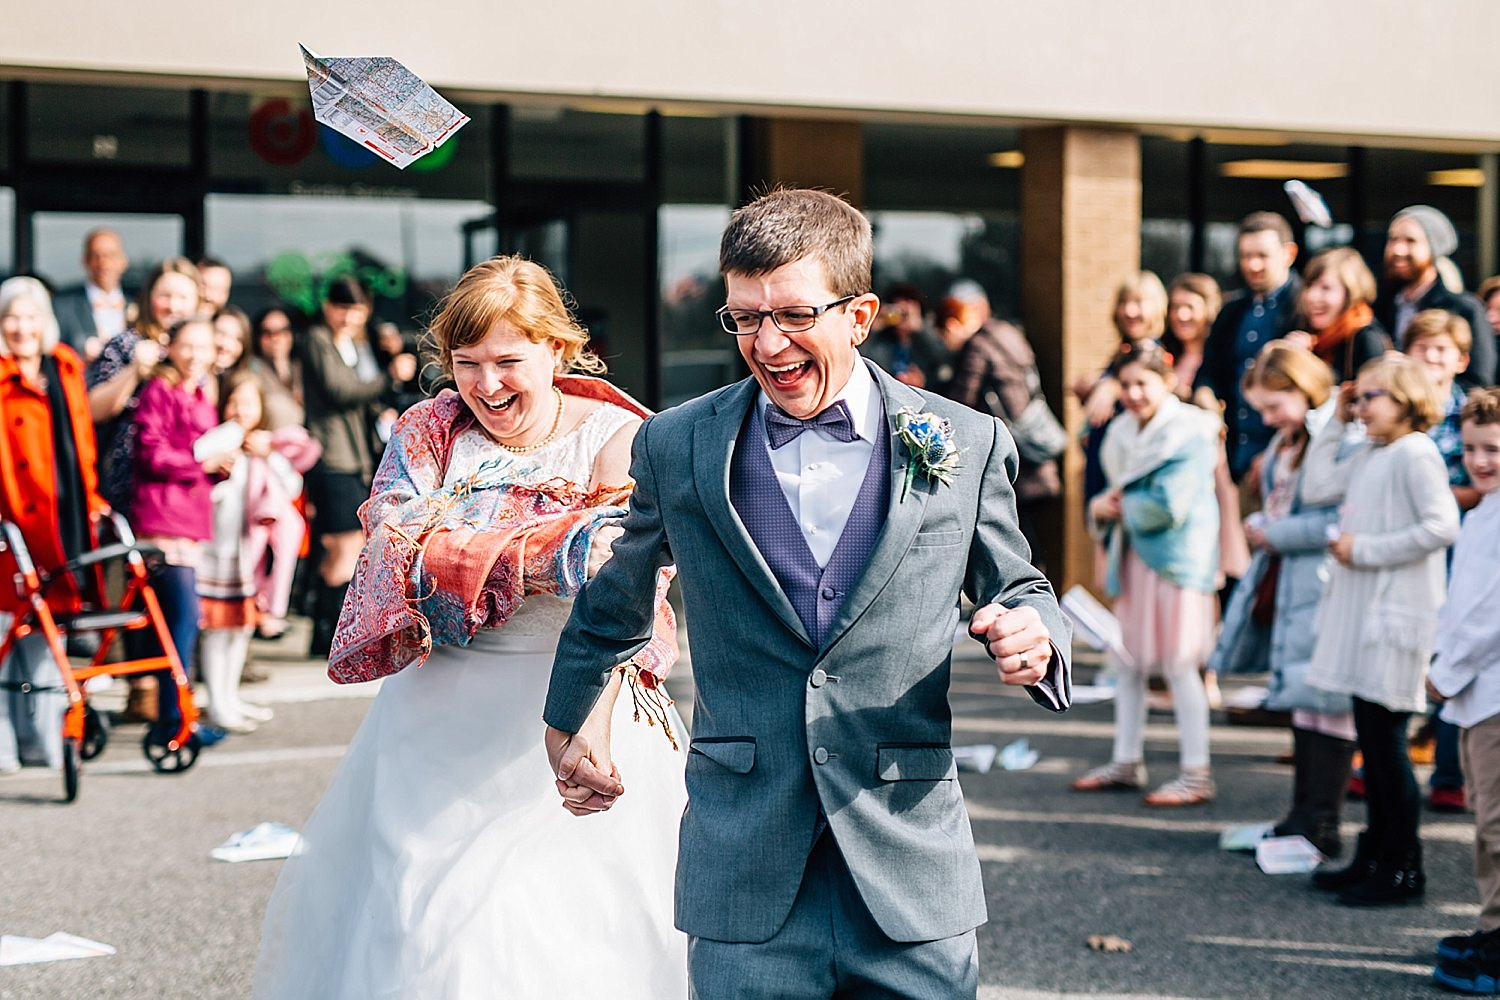 bride and groom send off with paper airplanes after reception of church wedding in delaware ohio